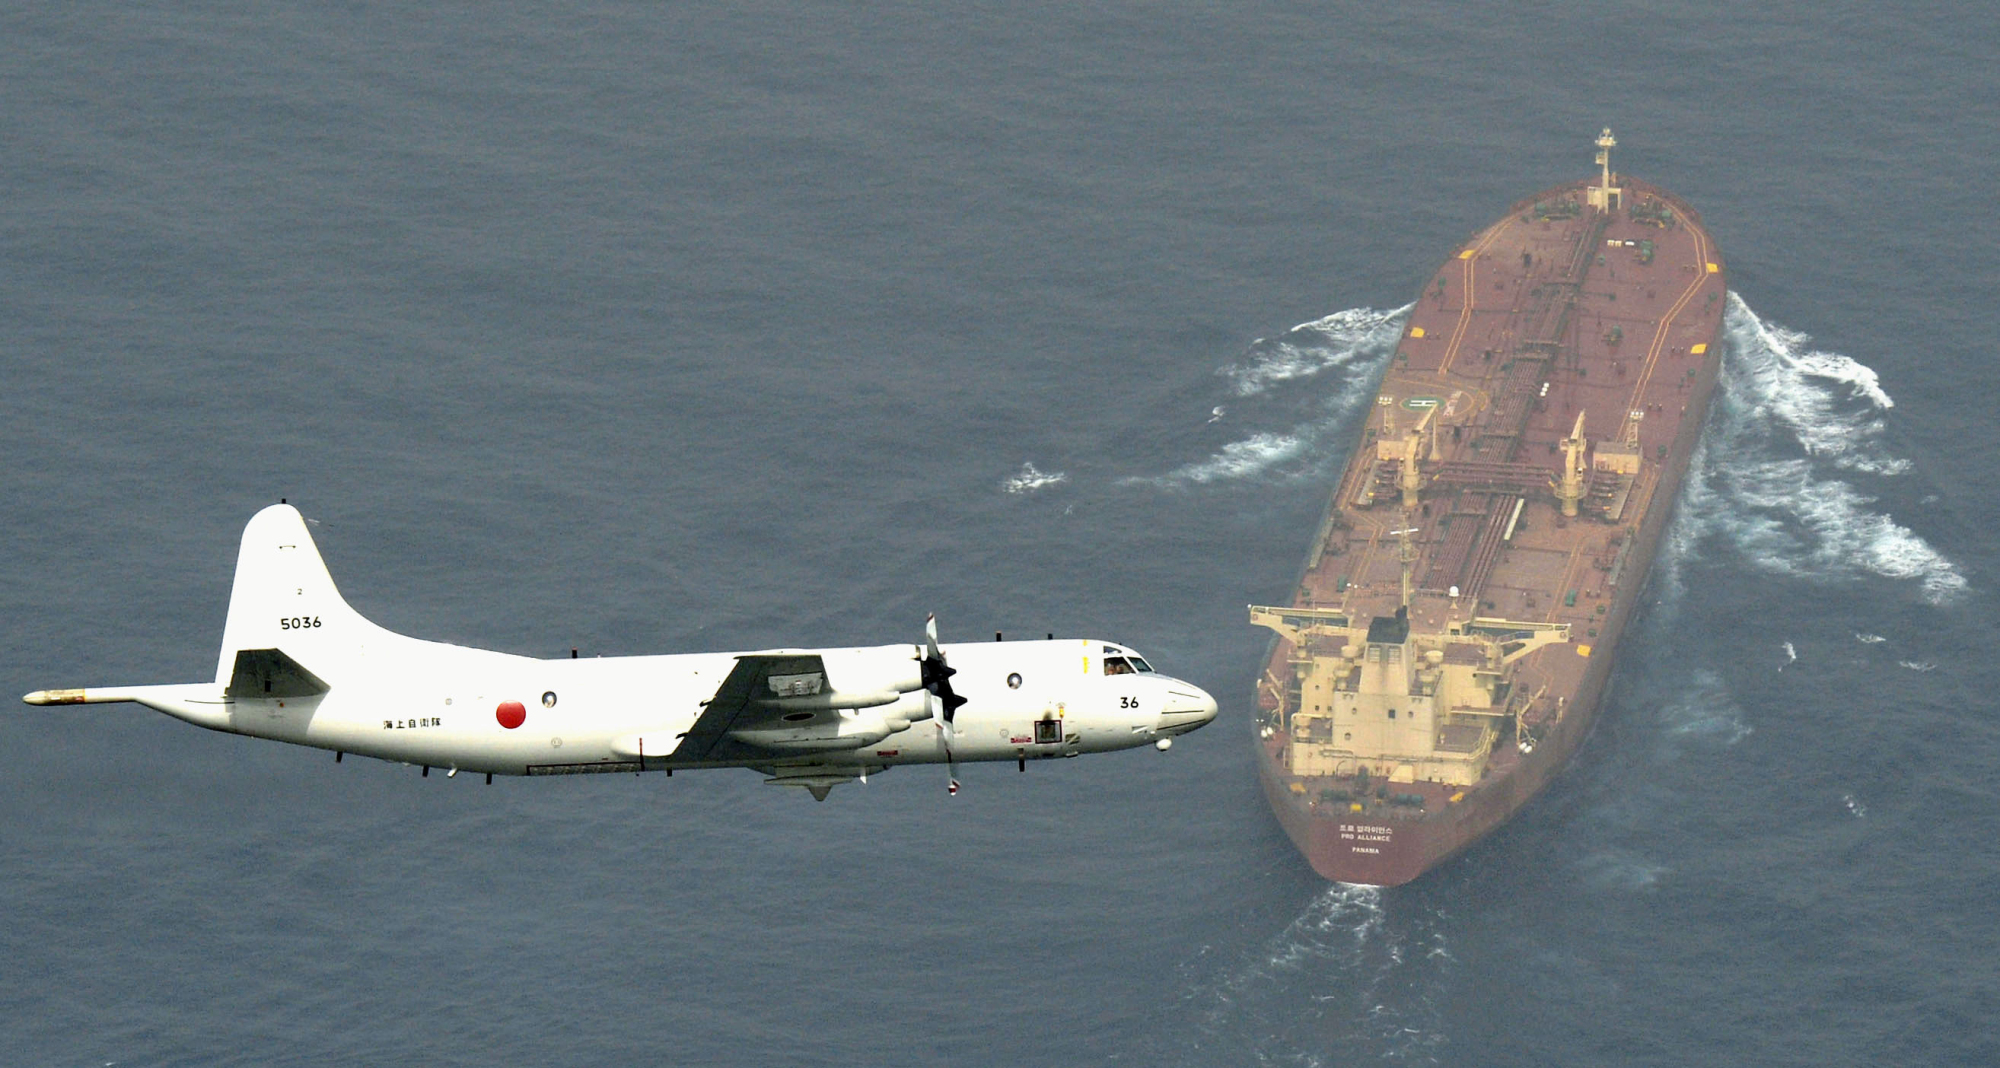 A Maritime Self-Defense Force P3-C Orion surveillance aircraft flies over an oil tanker during an anti-piracy operation in the Gulf of Aden, off Somalia, in August 2015.   KYODO